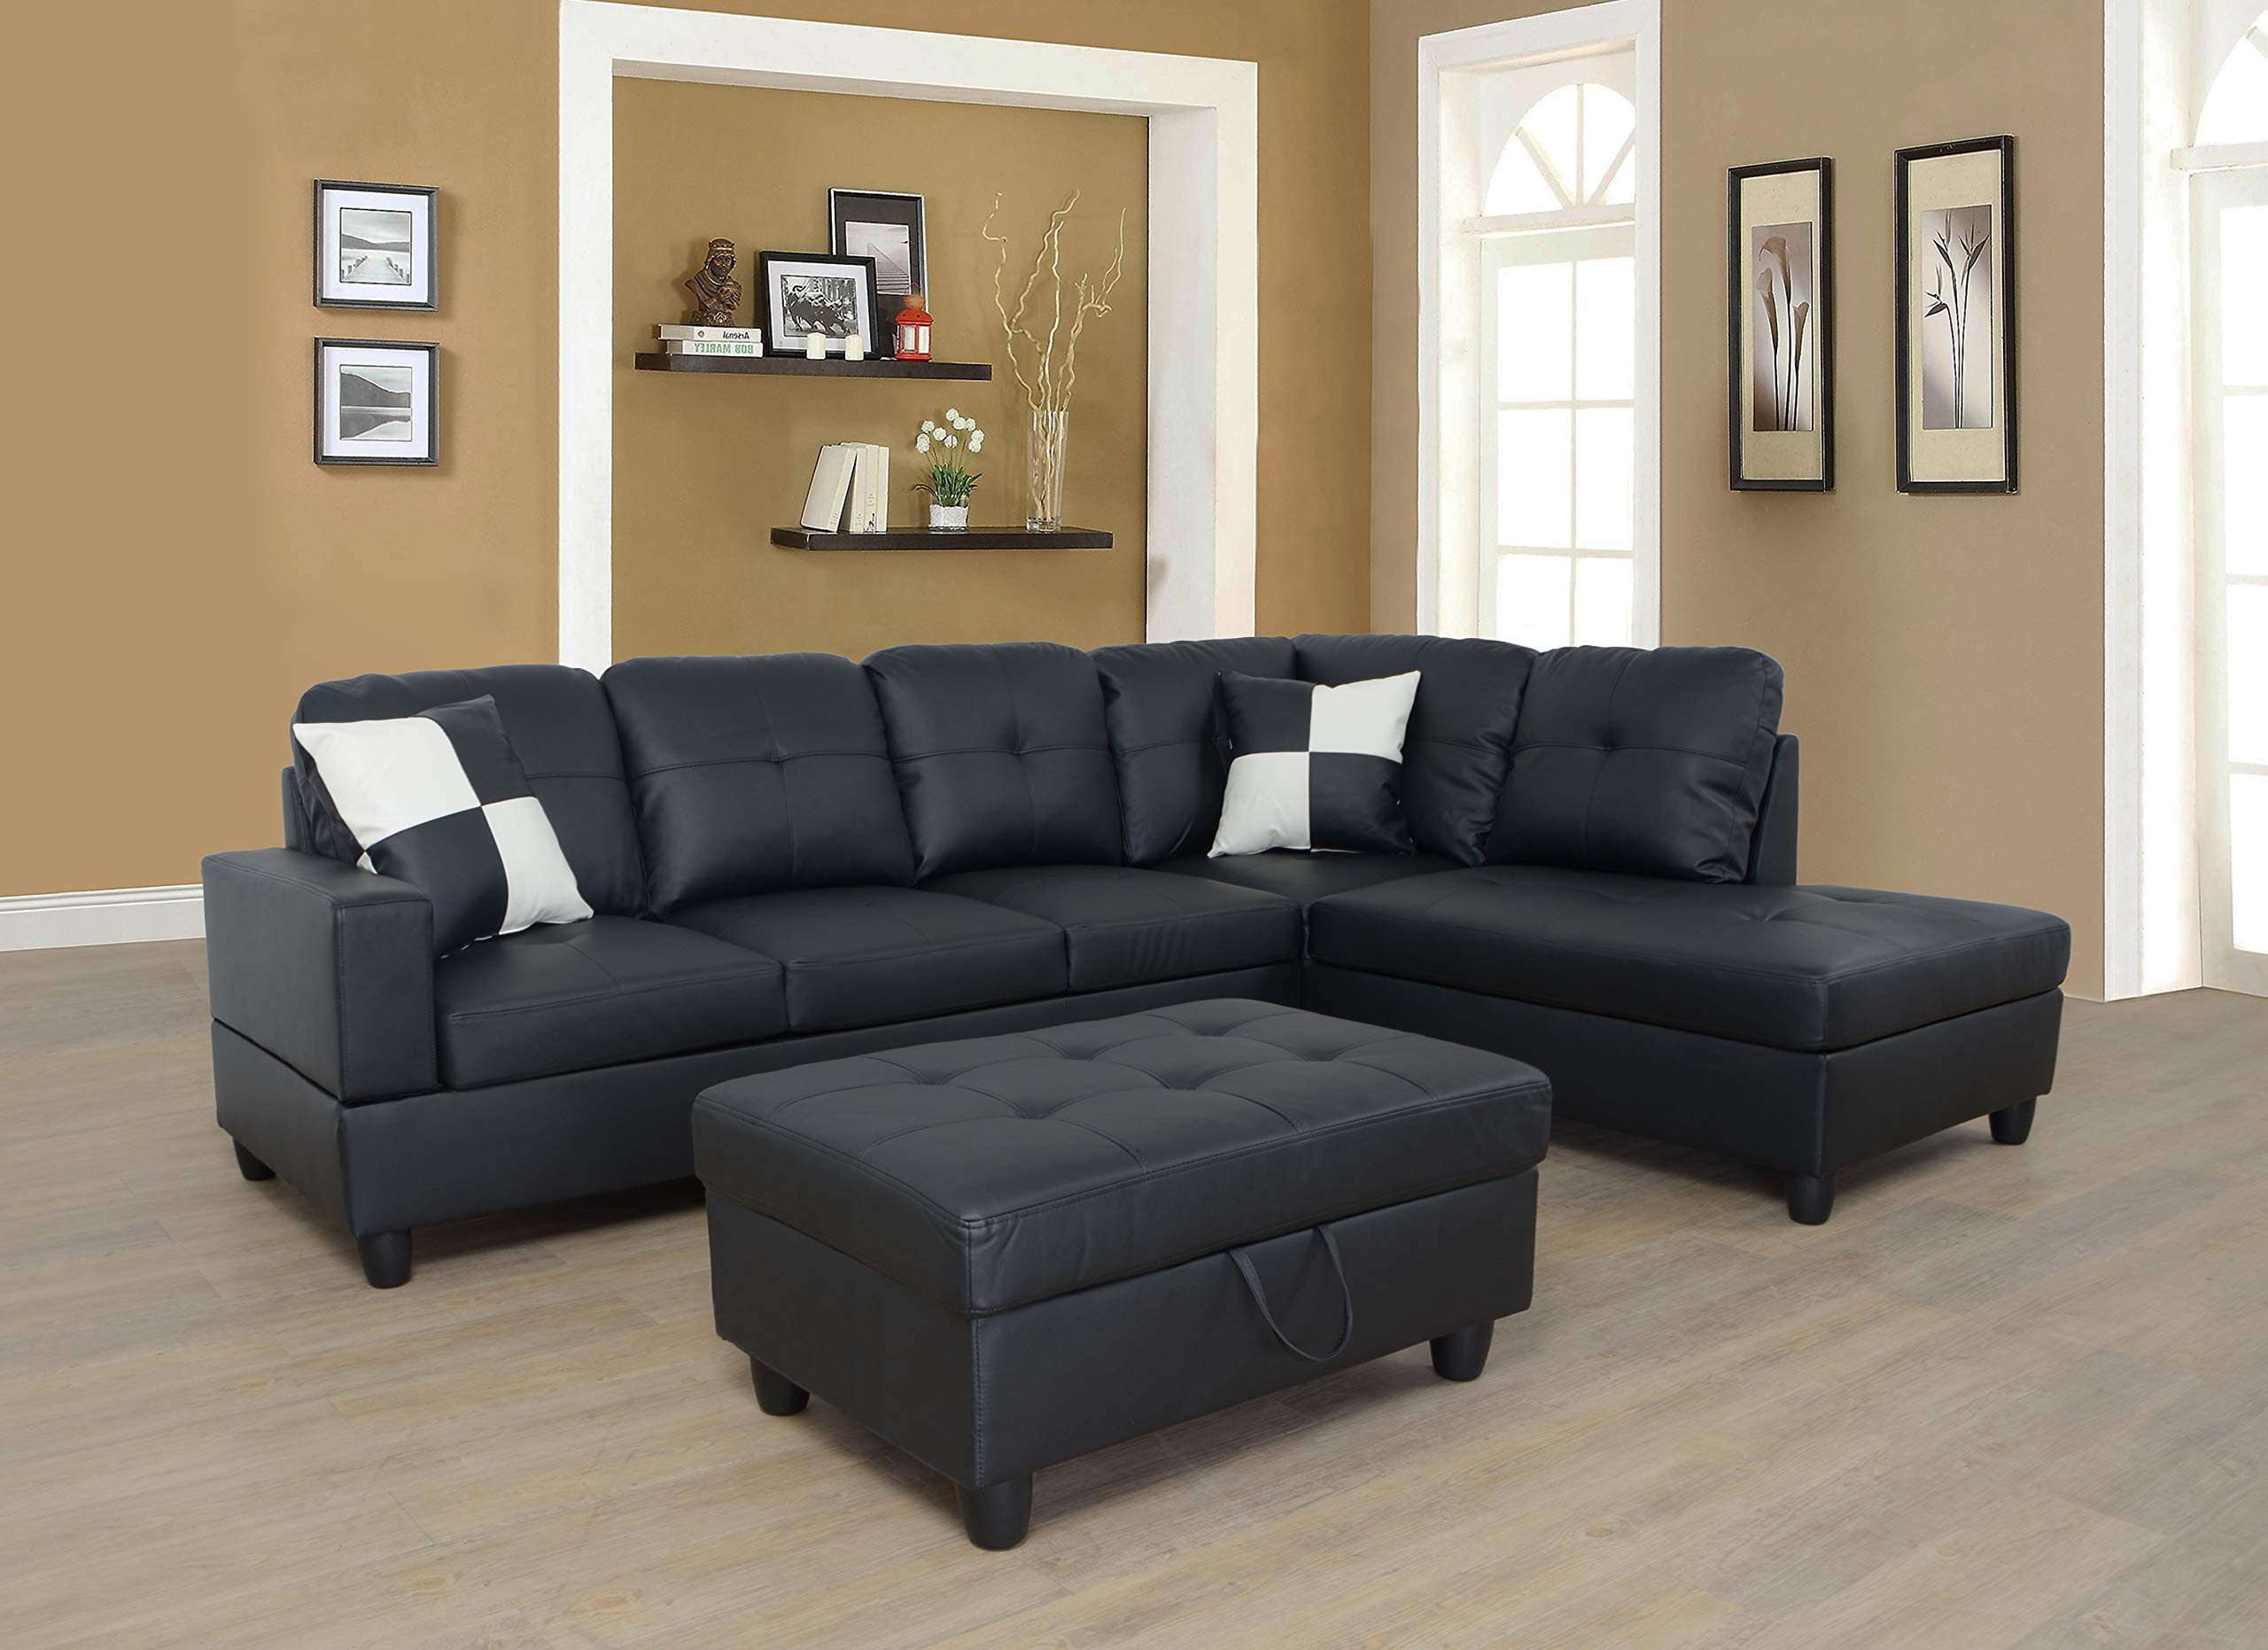 Lifestyle Furniture Right Facing 3PC Sectional Sofa Set,Faux Leather,Black(LS091B) by Lifestyle